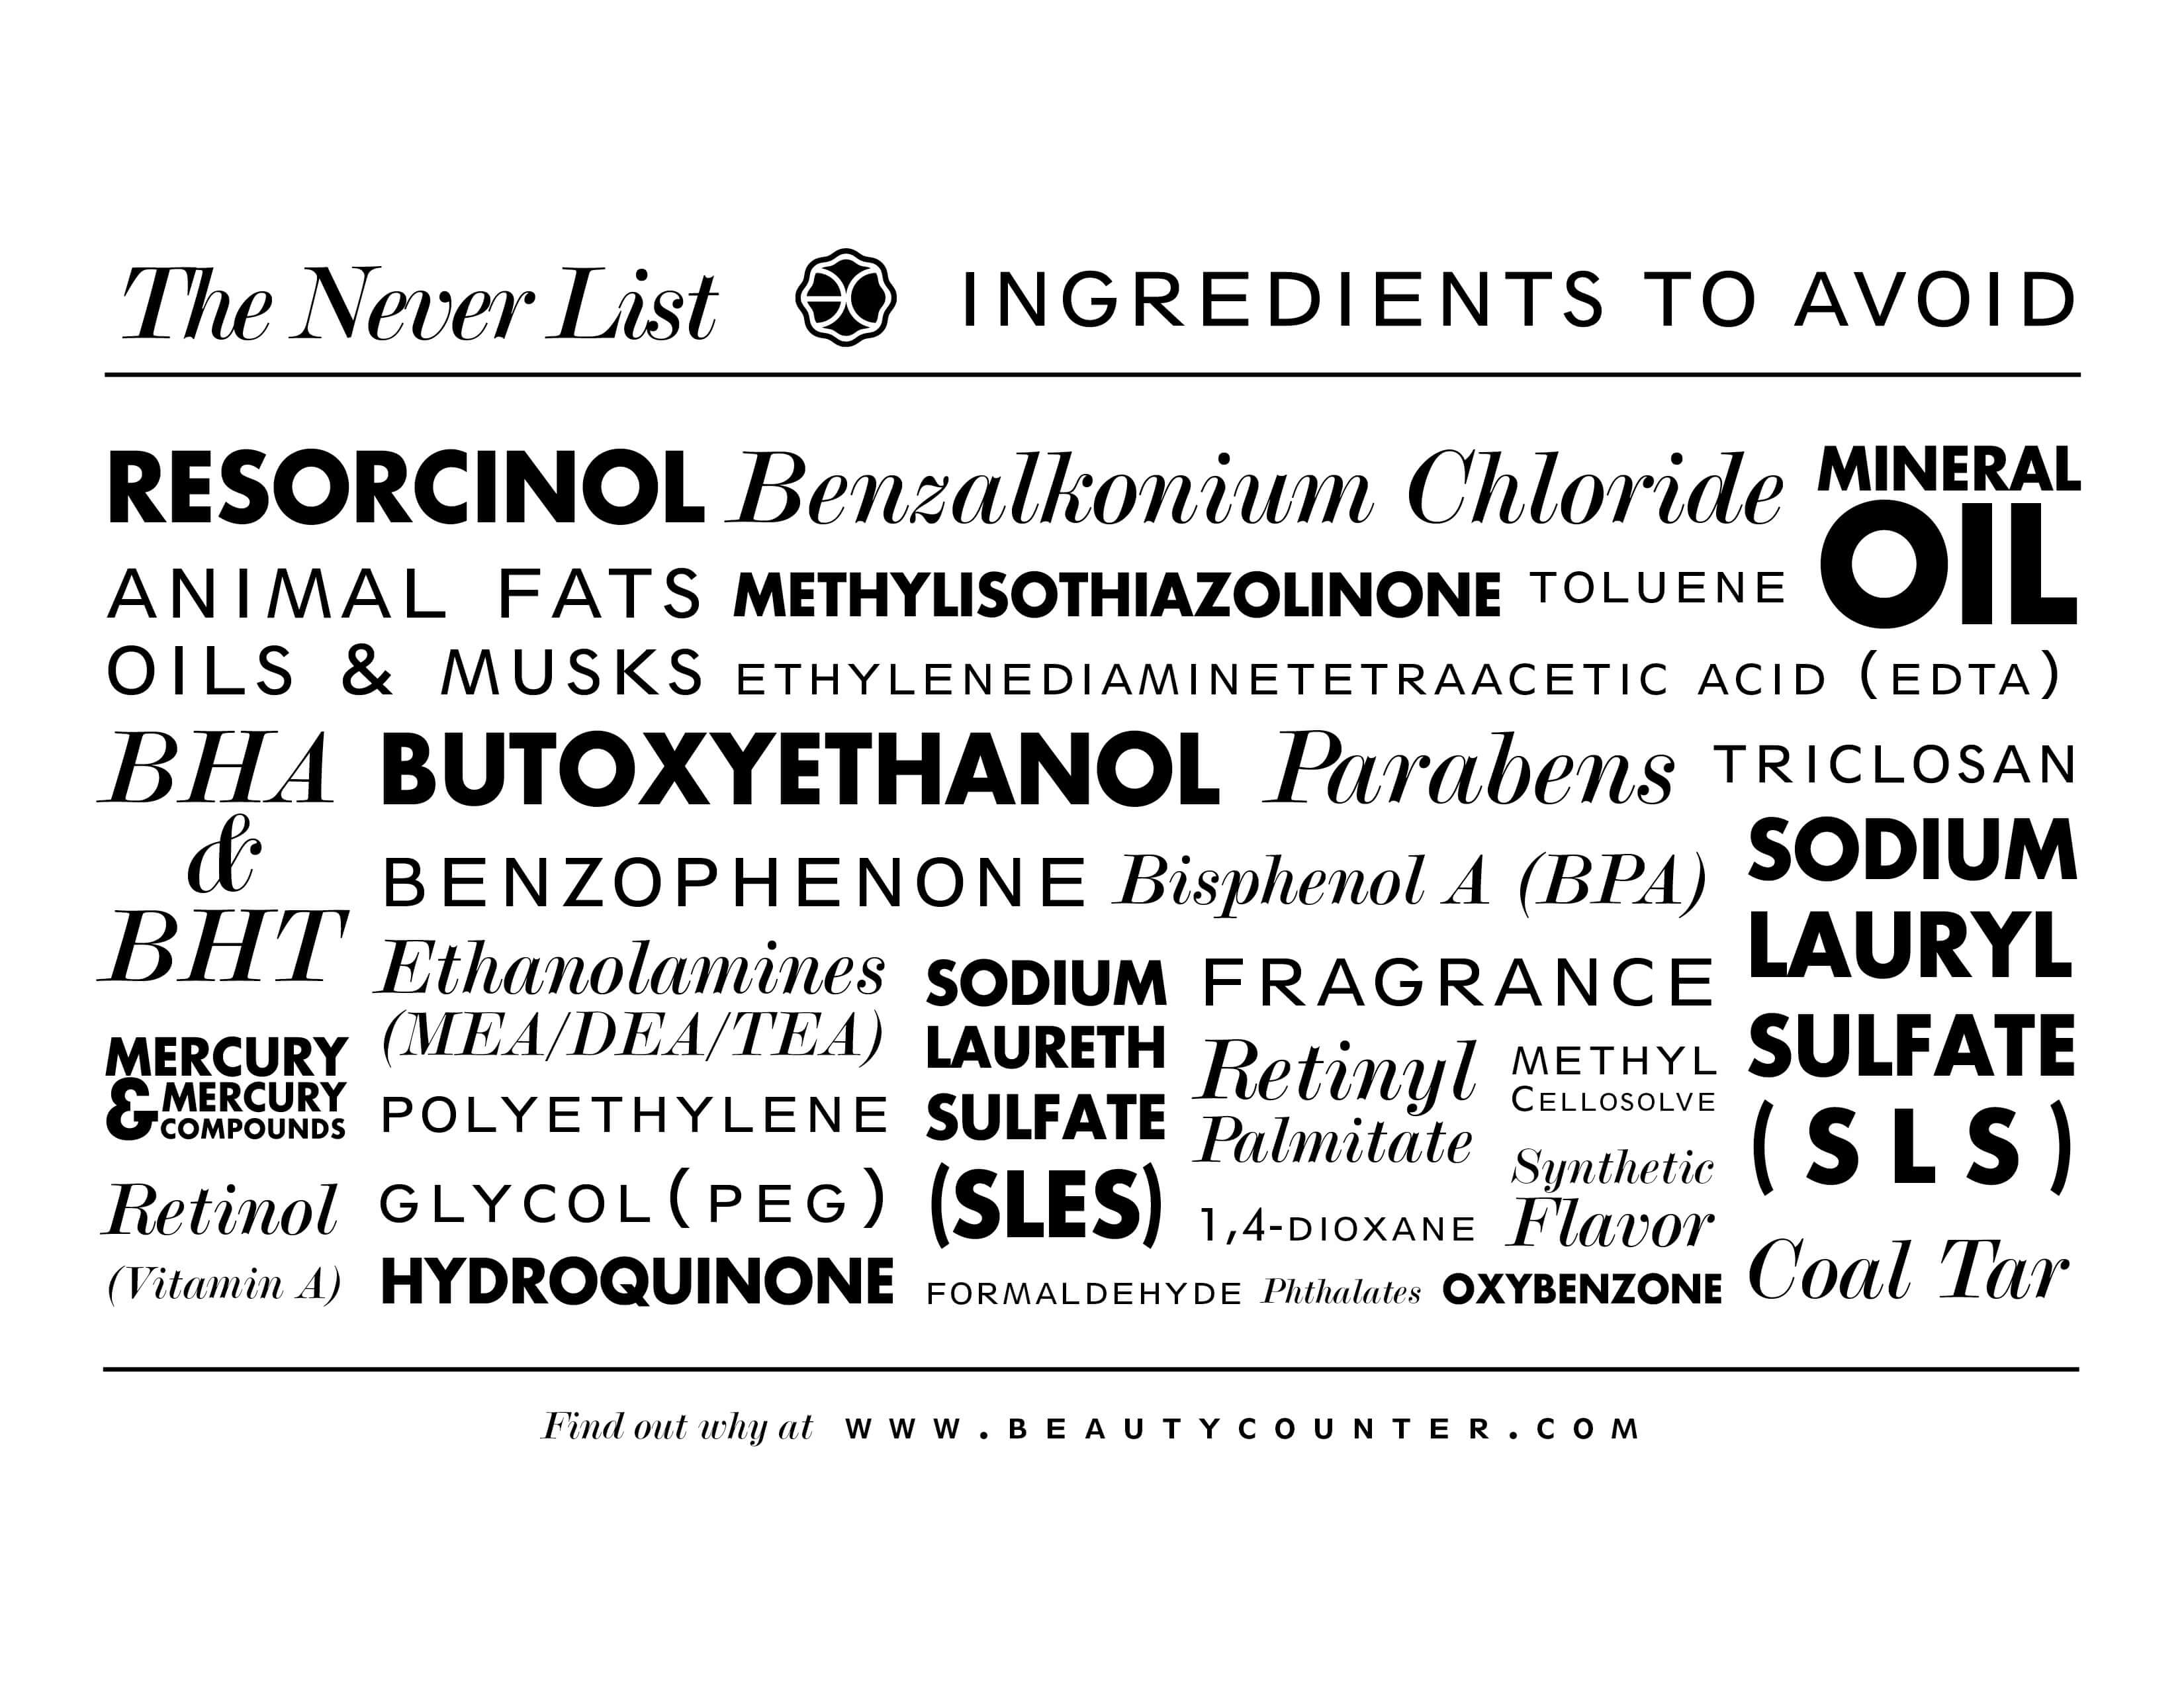 10 Ingredients You Don't Want in Your Cosmetics!